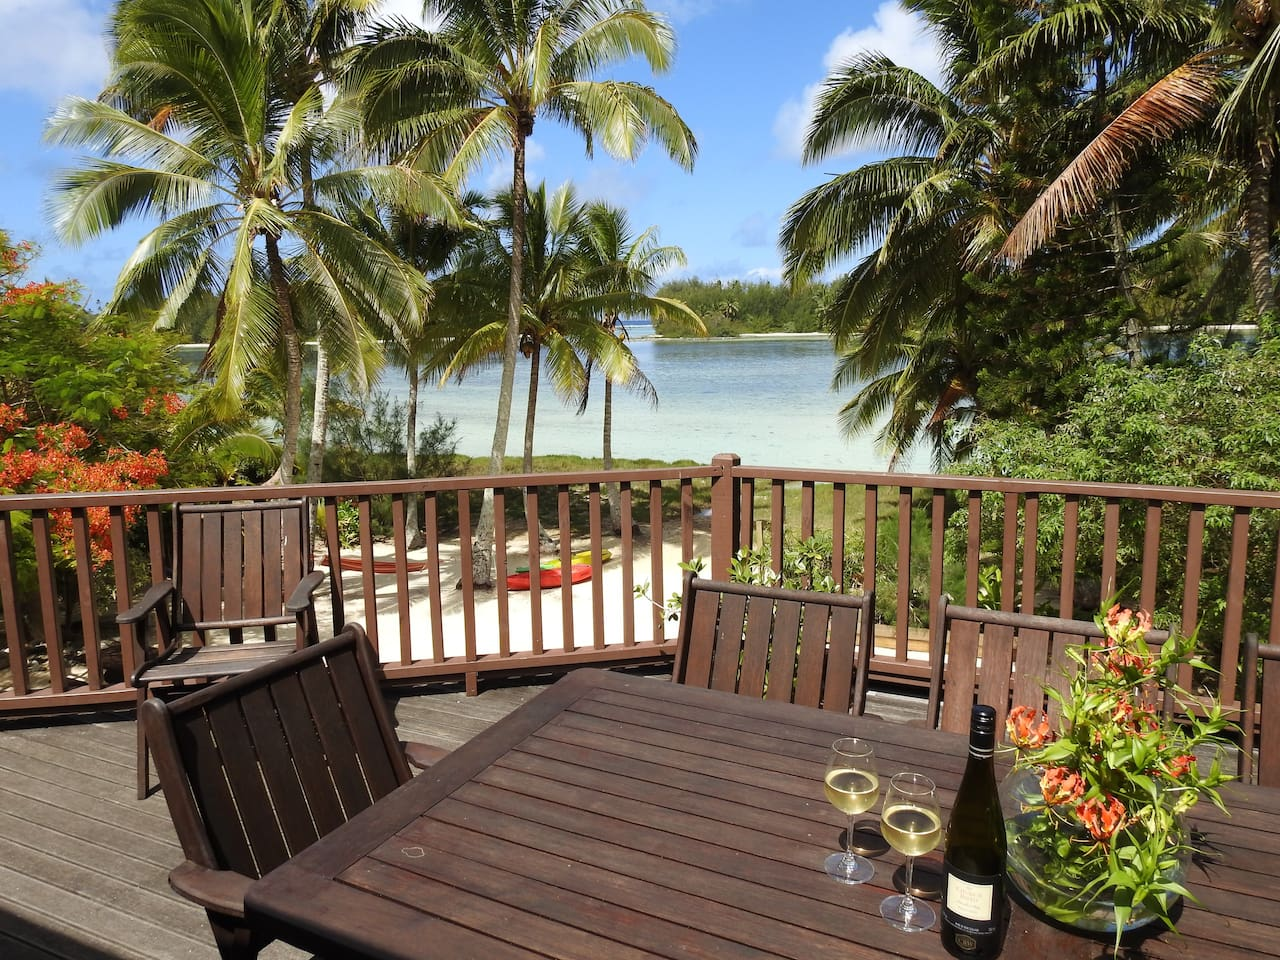 stunning Muri lagoon at your doorstep. Amazing views from the outdoor living areas